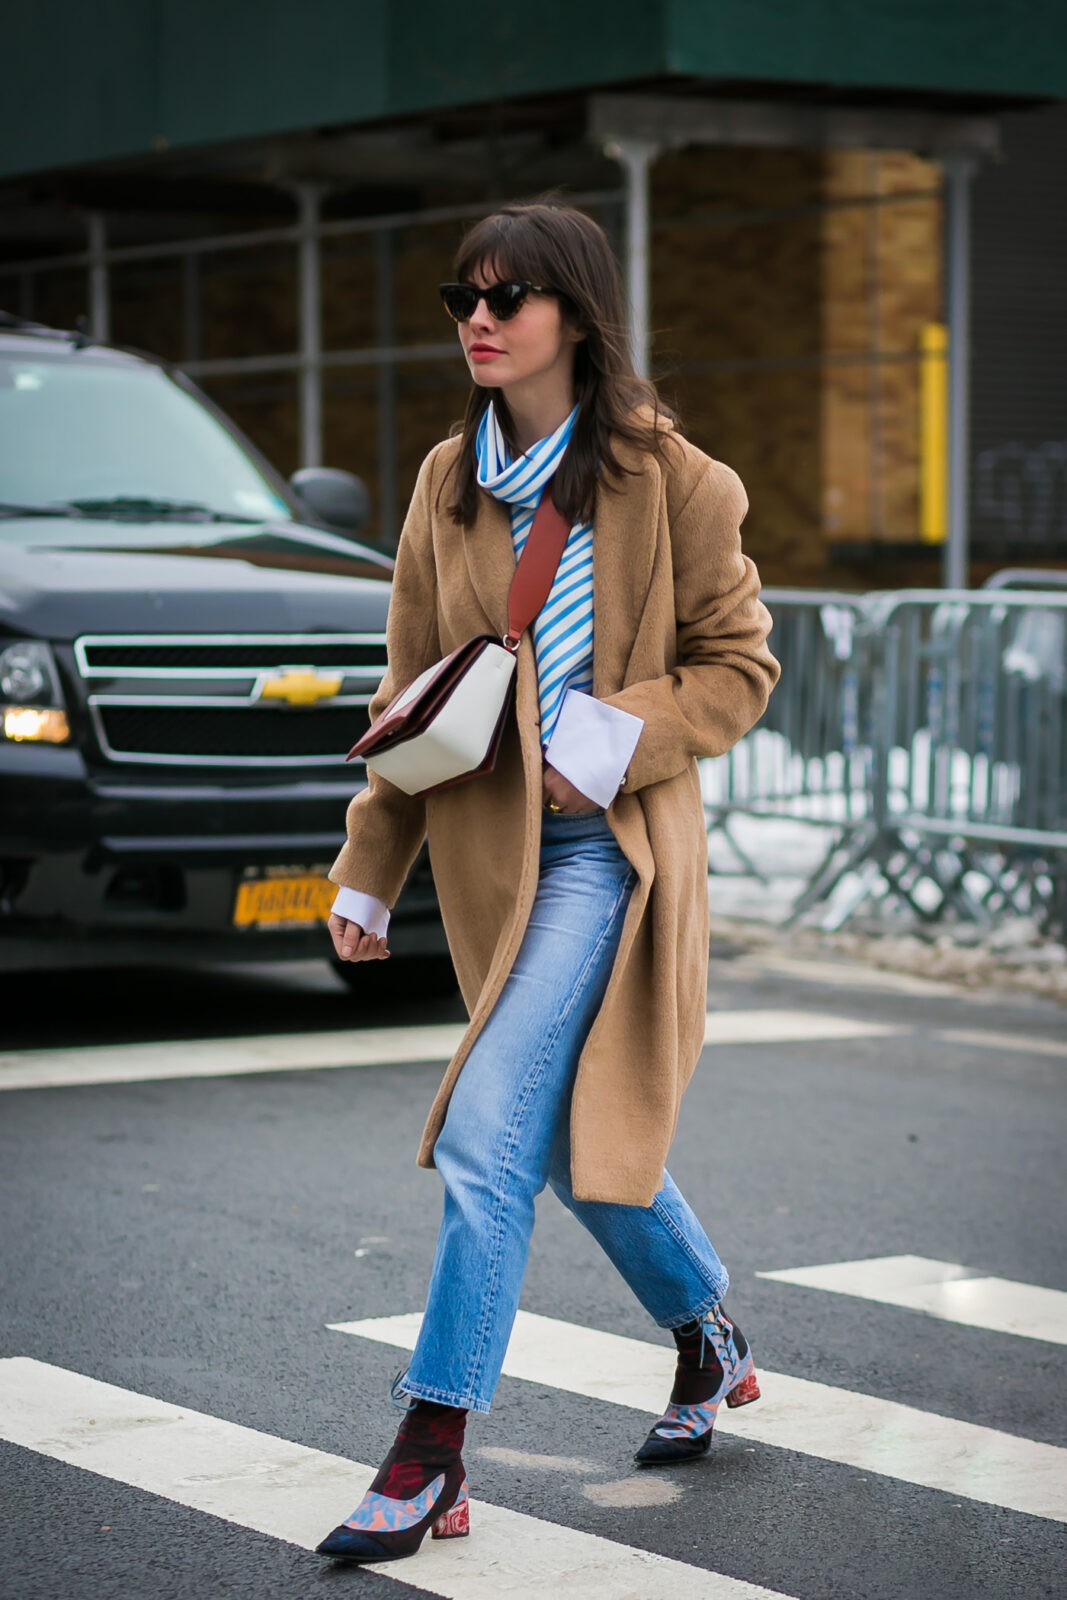 kat collings thumb edit seven camel coat stylebook january 2019